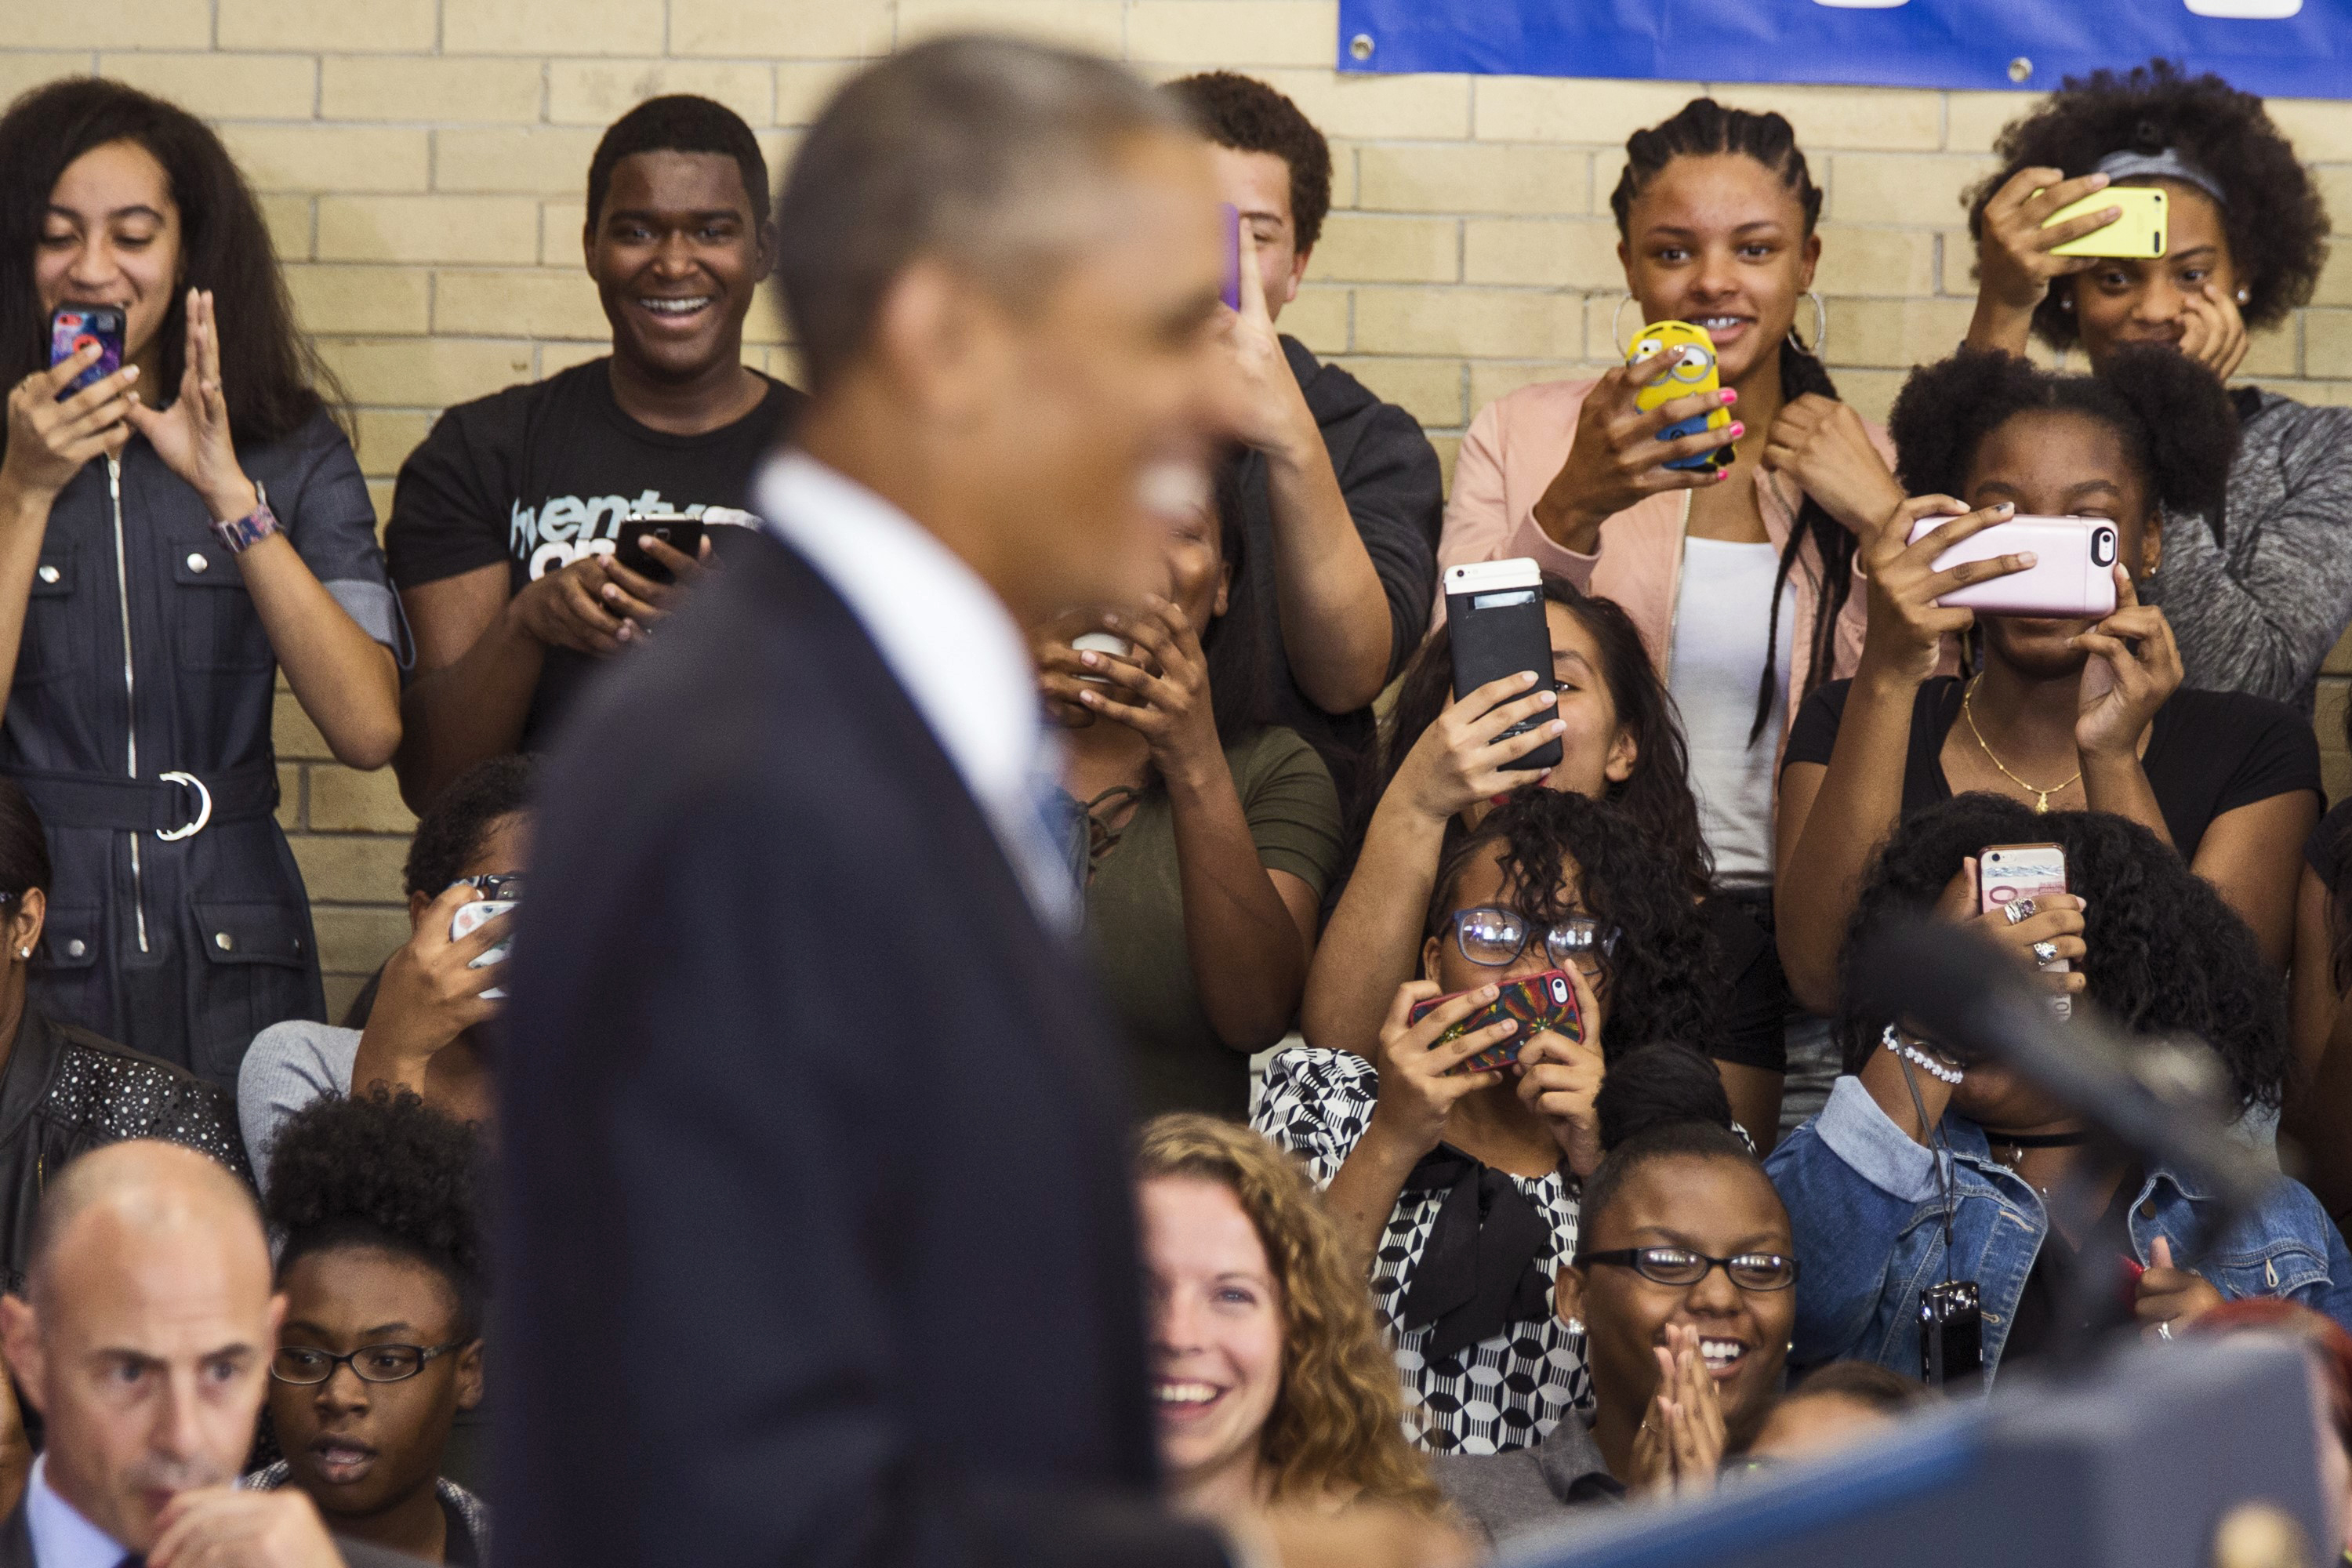 Obama smiles as students take photos on their cell phones during a speech at Benjamin Banneker Academy High School in Washington, on Oct. 17, 2016.